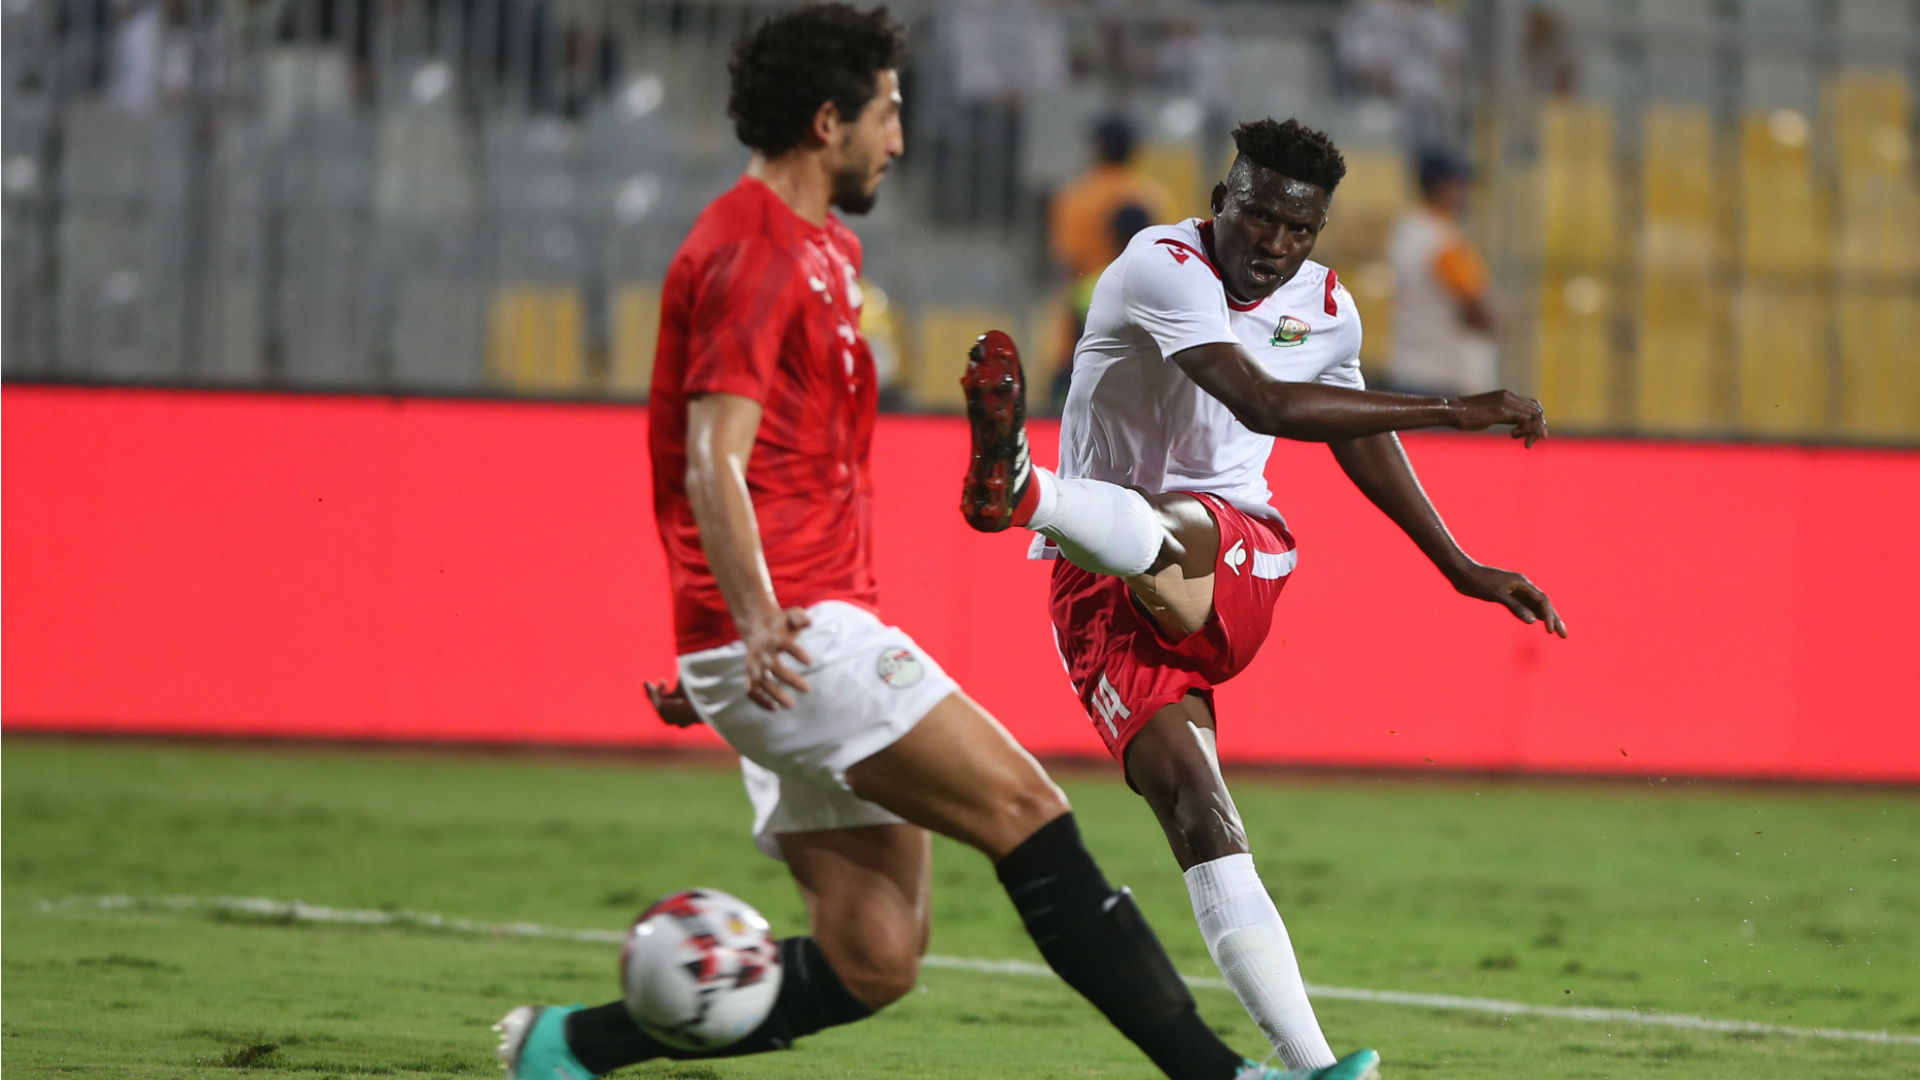 Olympic Games: Egypt's target is to reach second round in Tokyo - Hegazi